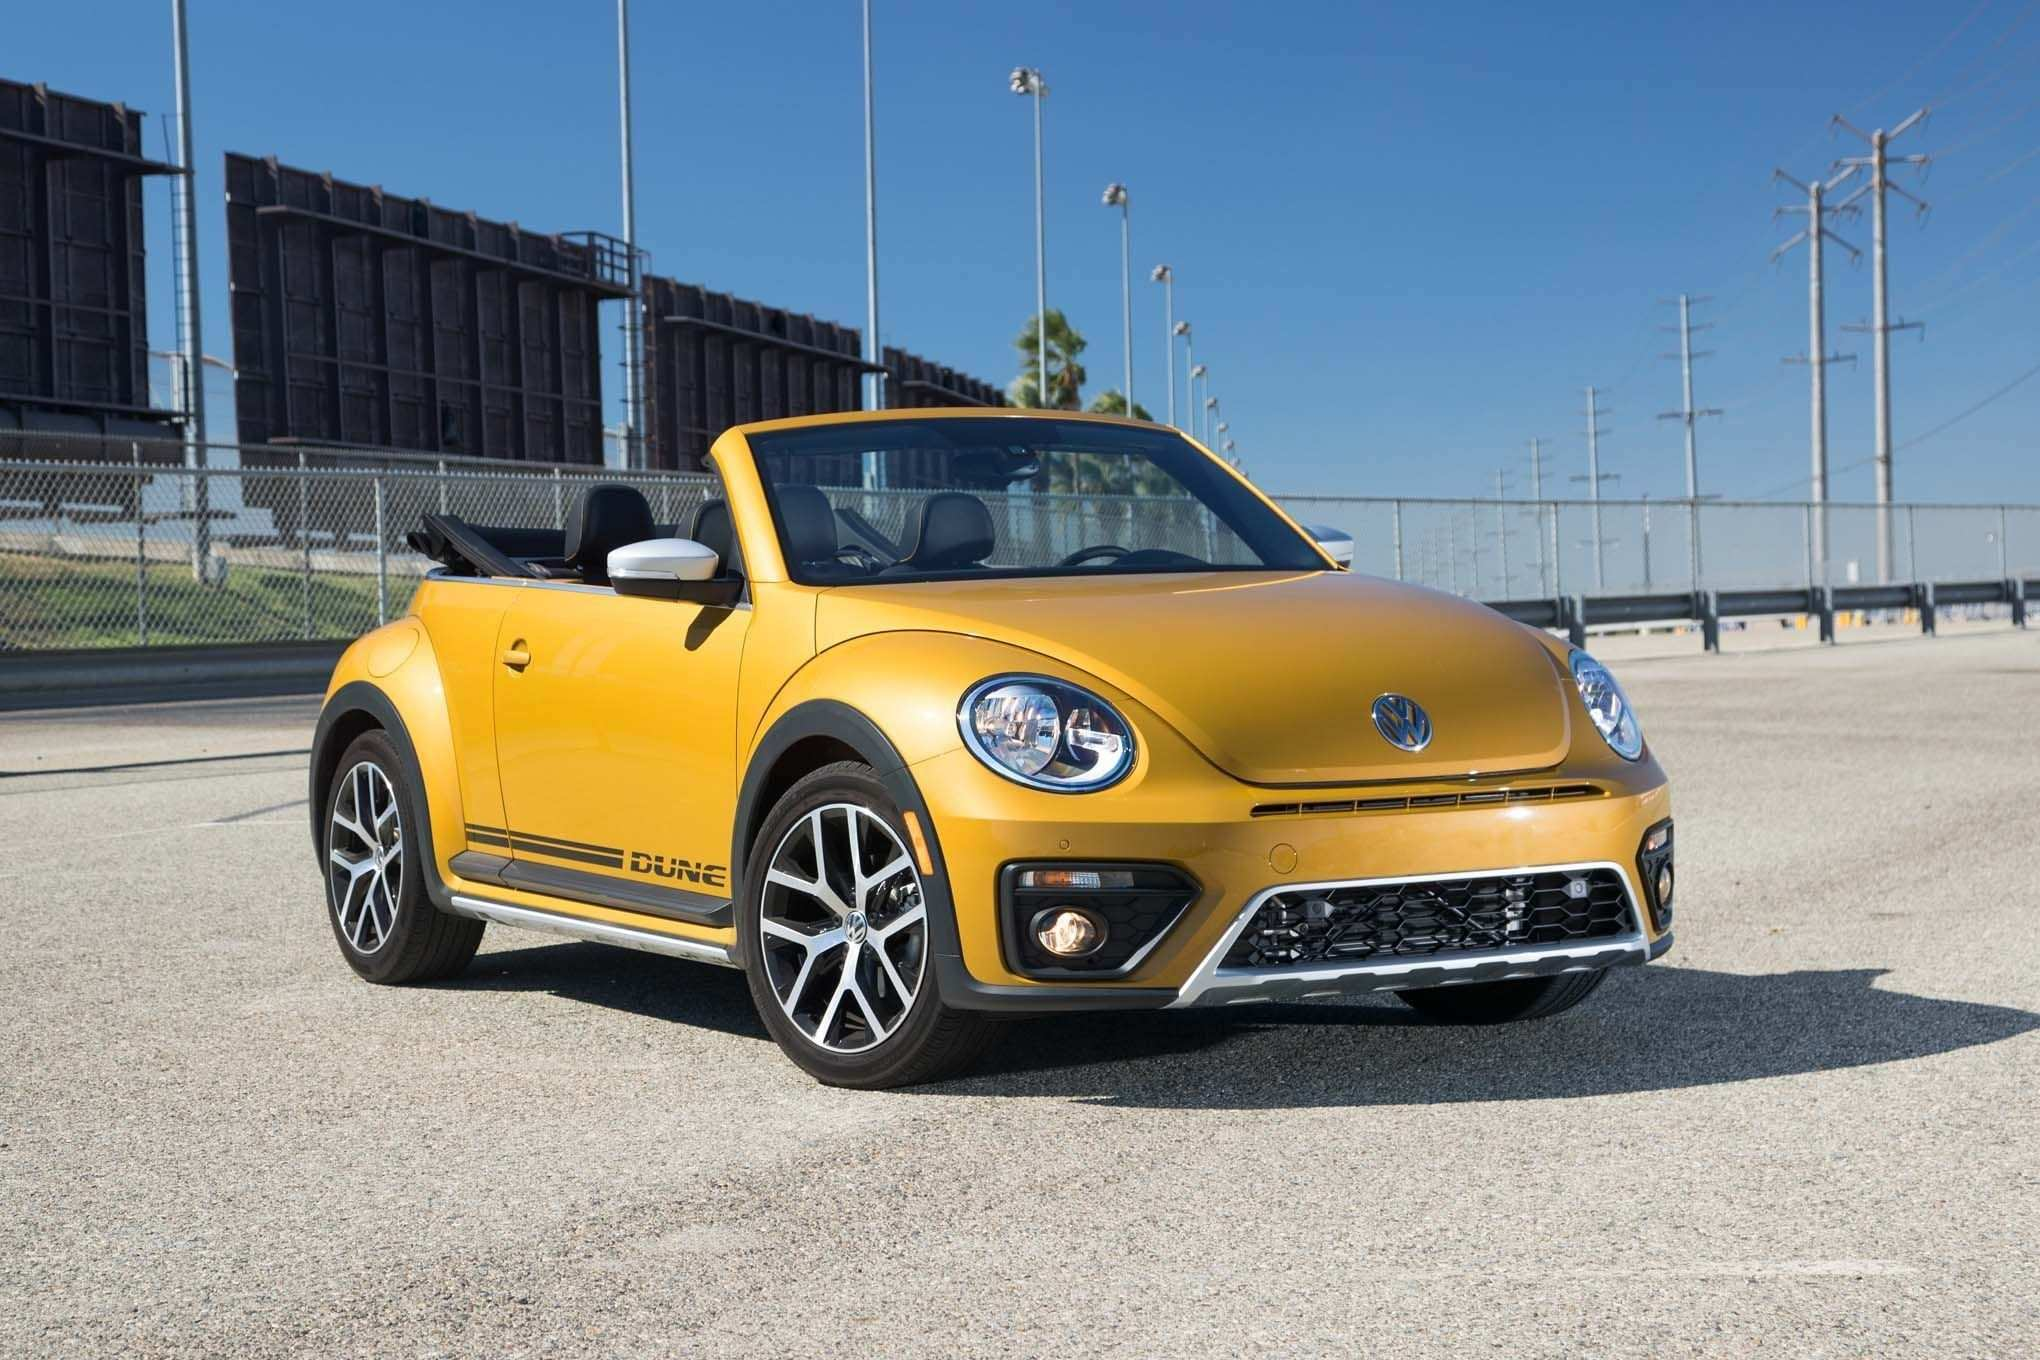 39 Best Review 2020 Vw Beetle Dune Wallpaper with 2020 Vw Beetle Dune